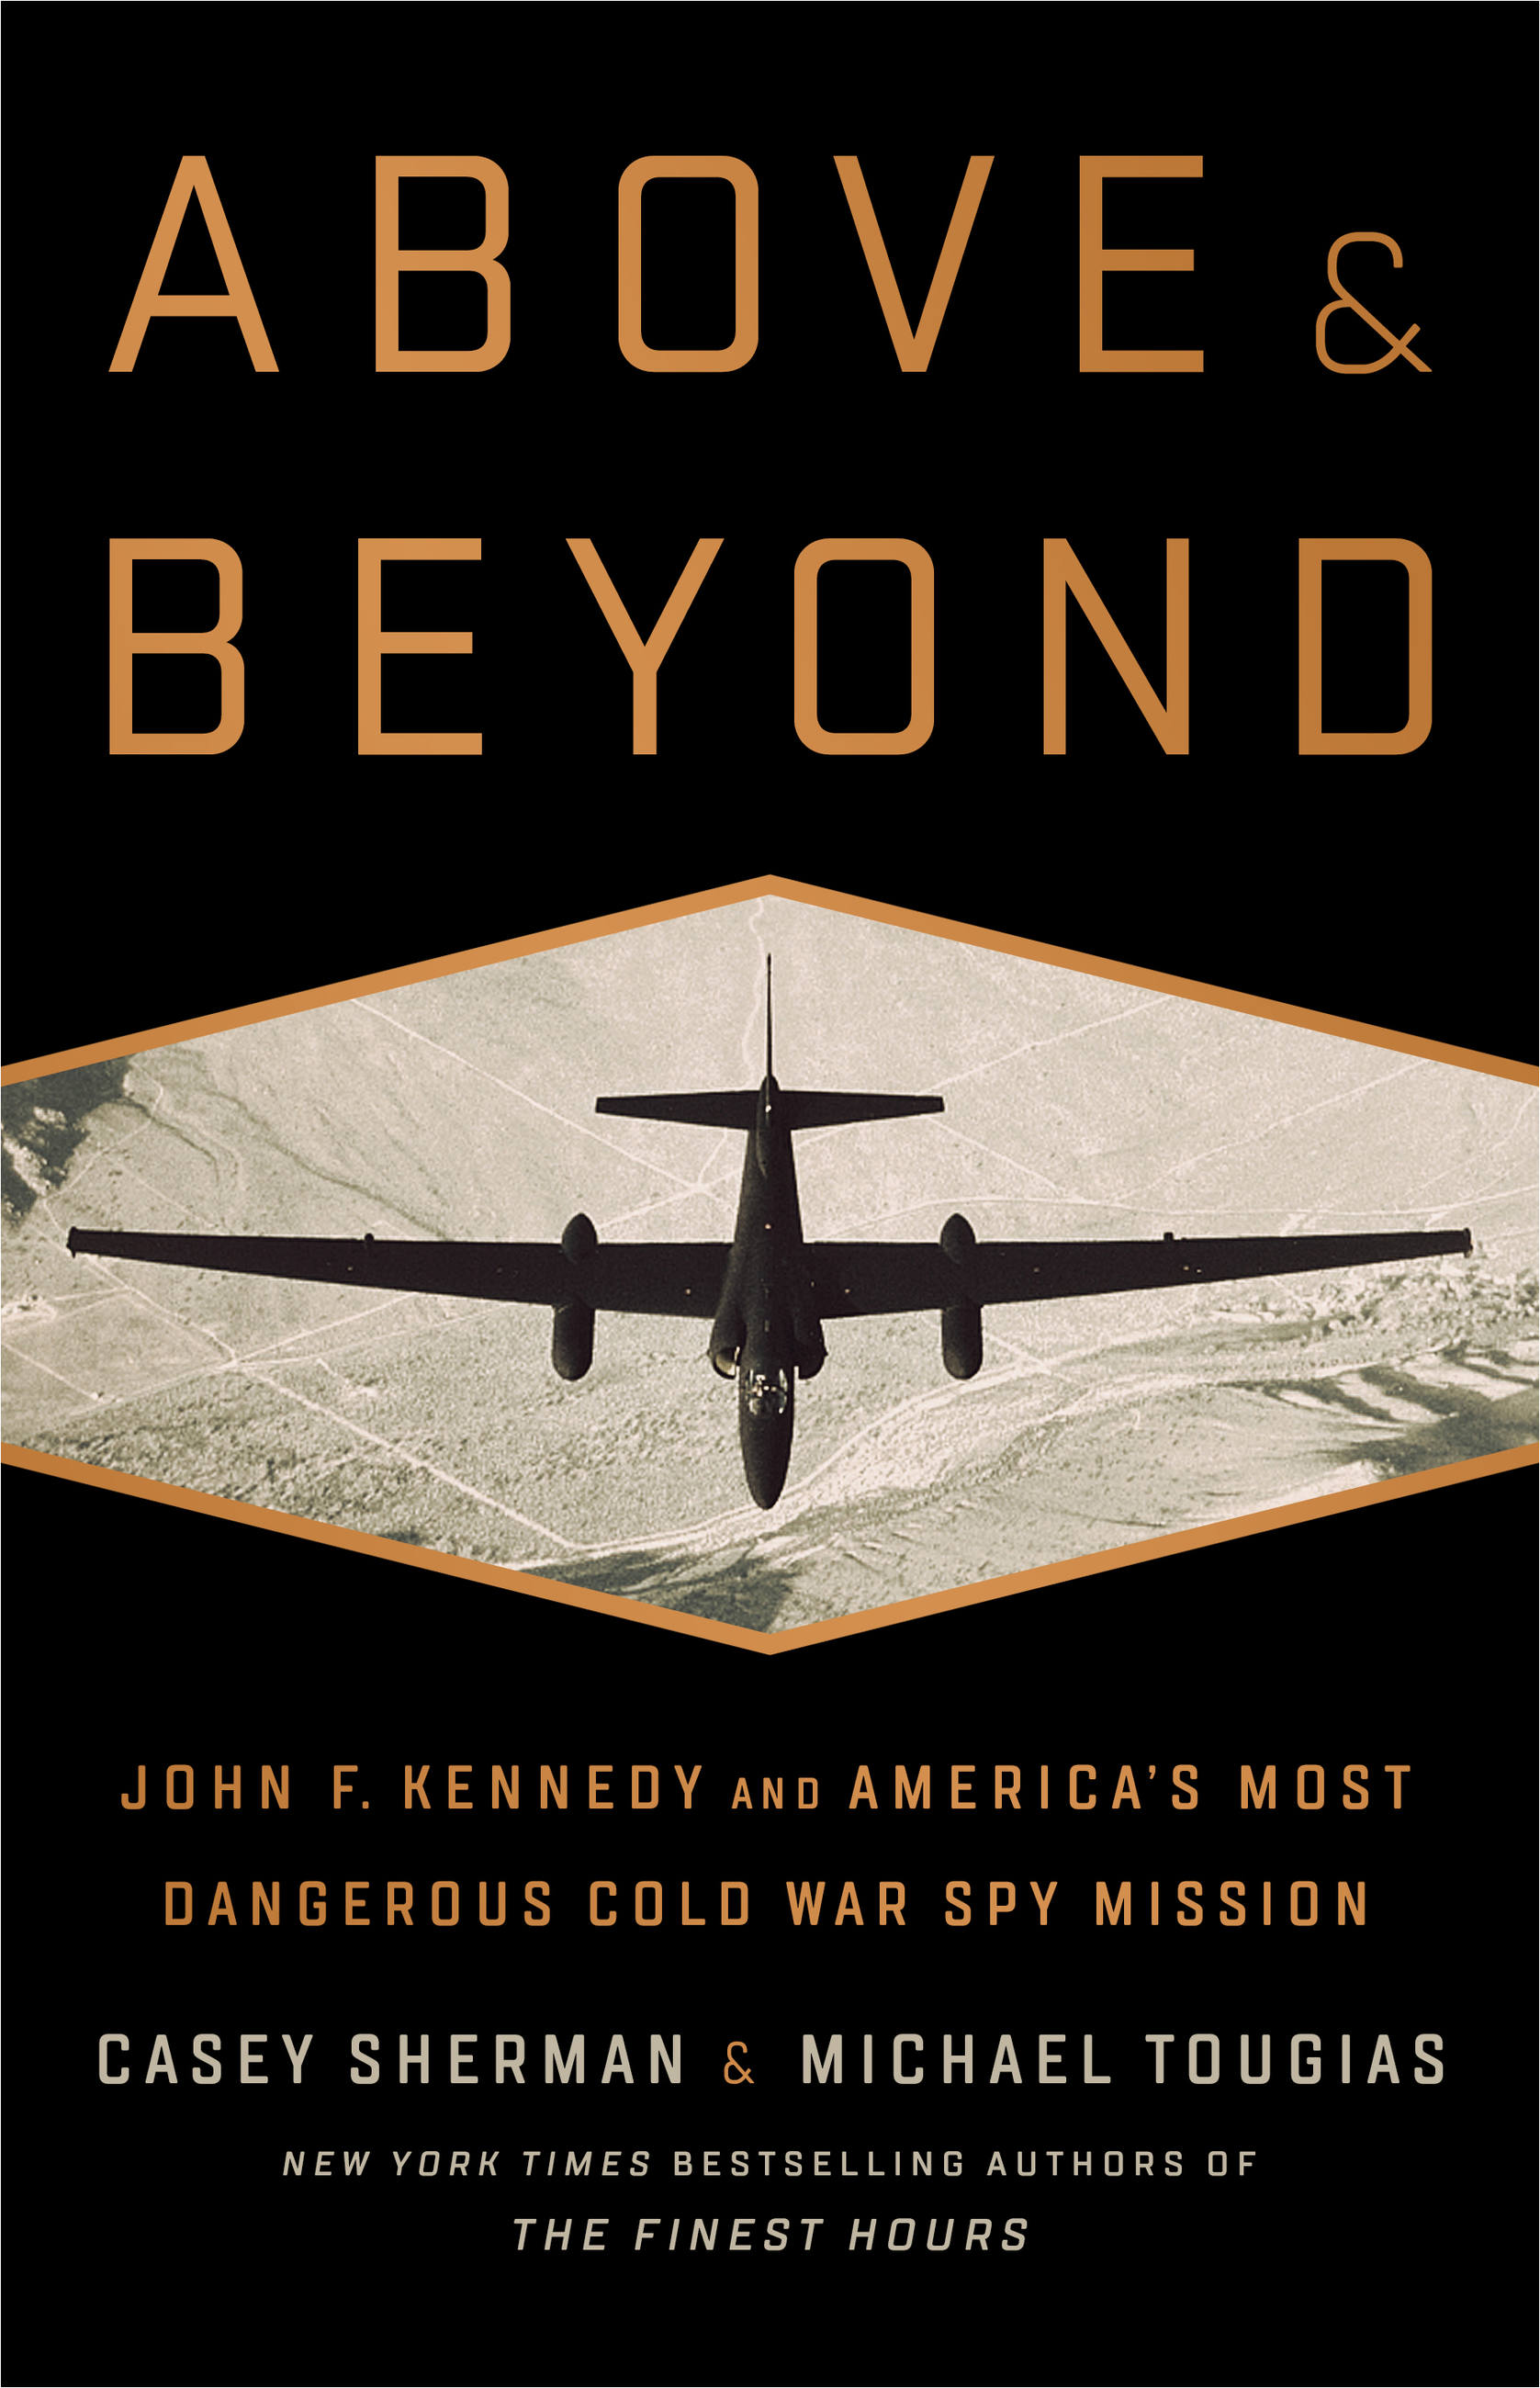 Above and Beyond John F. Kennedy and America's Most Dangerous Cold War Spy Mission